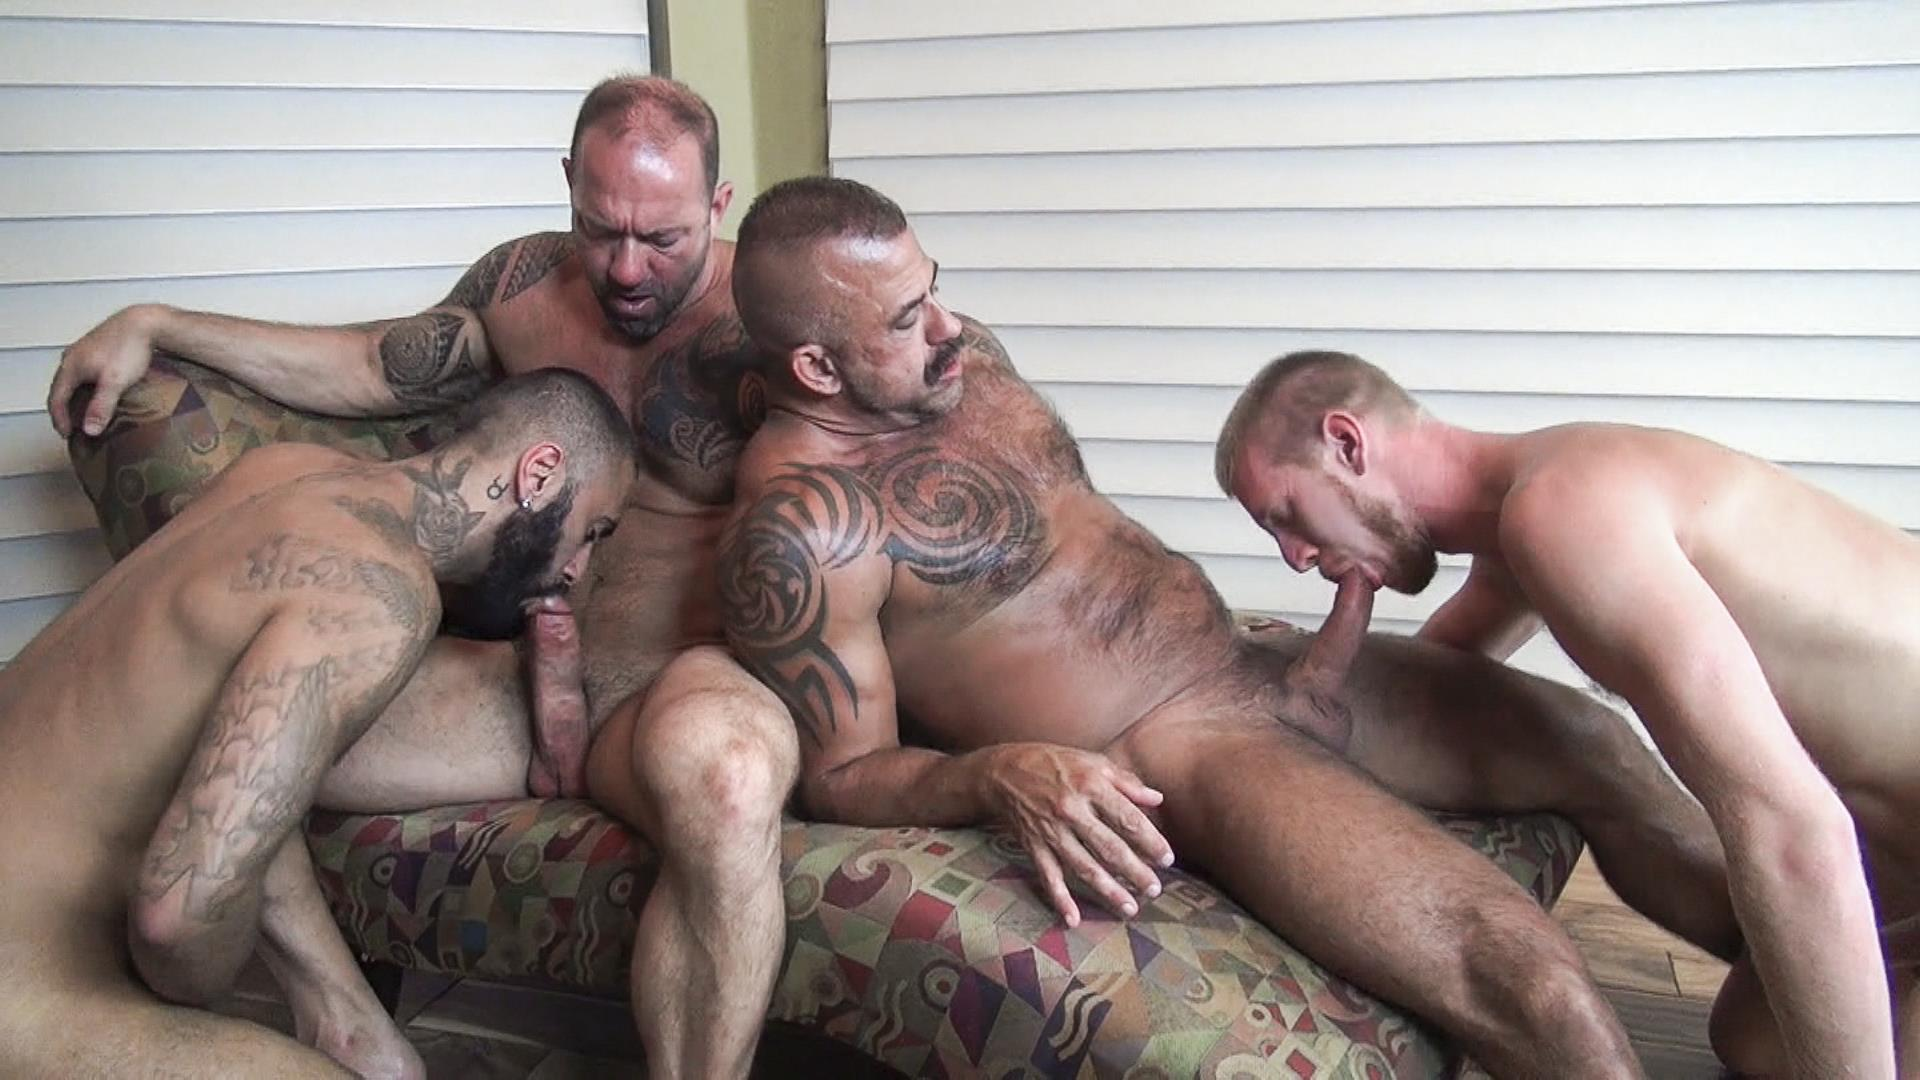 Raw Fuck Club Vic Rocco and Rikk York and Billy Warren and Job Galt Bareback Daddy Amateur Gay Porn 10 Four Hairy Muscle Daddies In A Bareback Fuck Fest Orgy